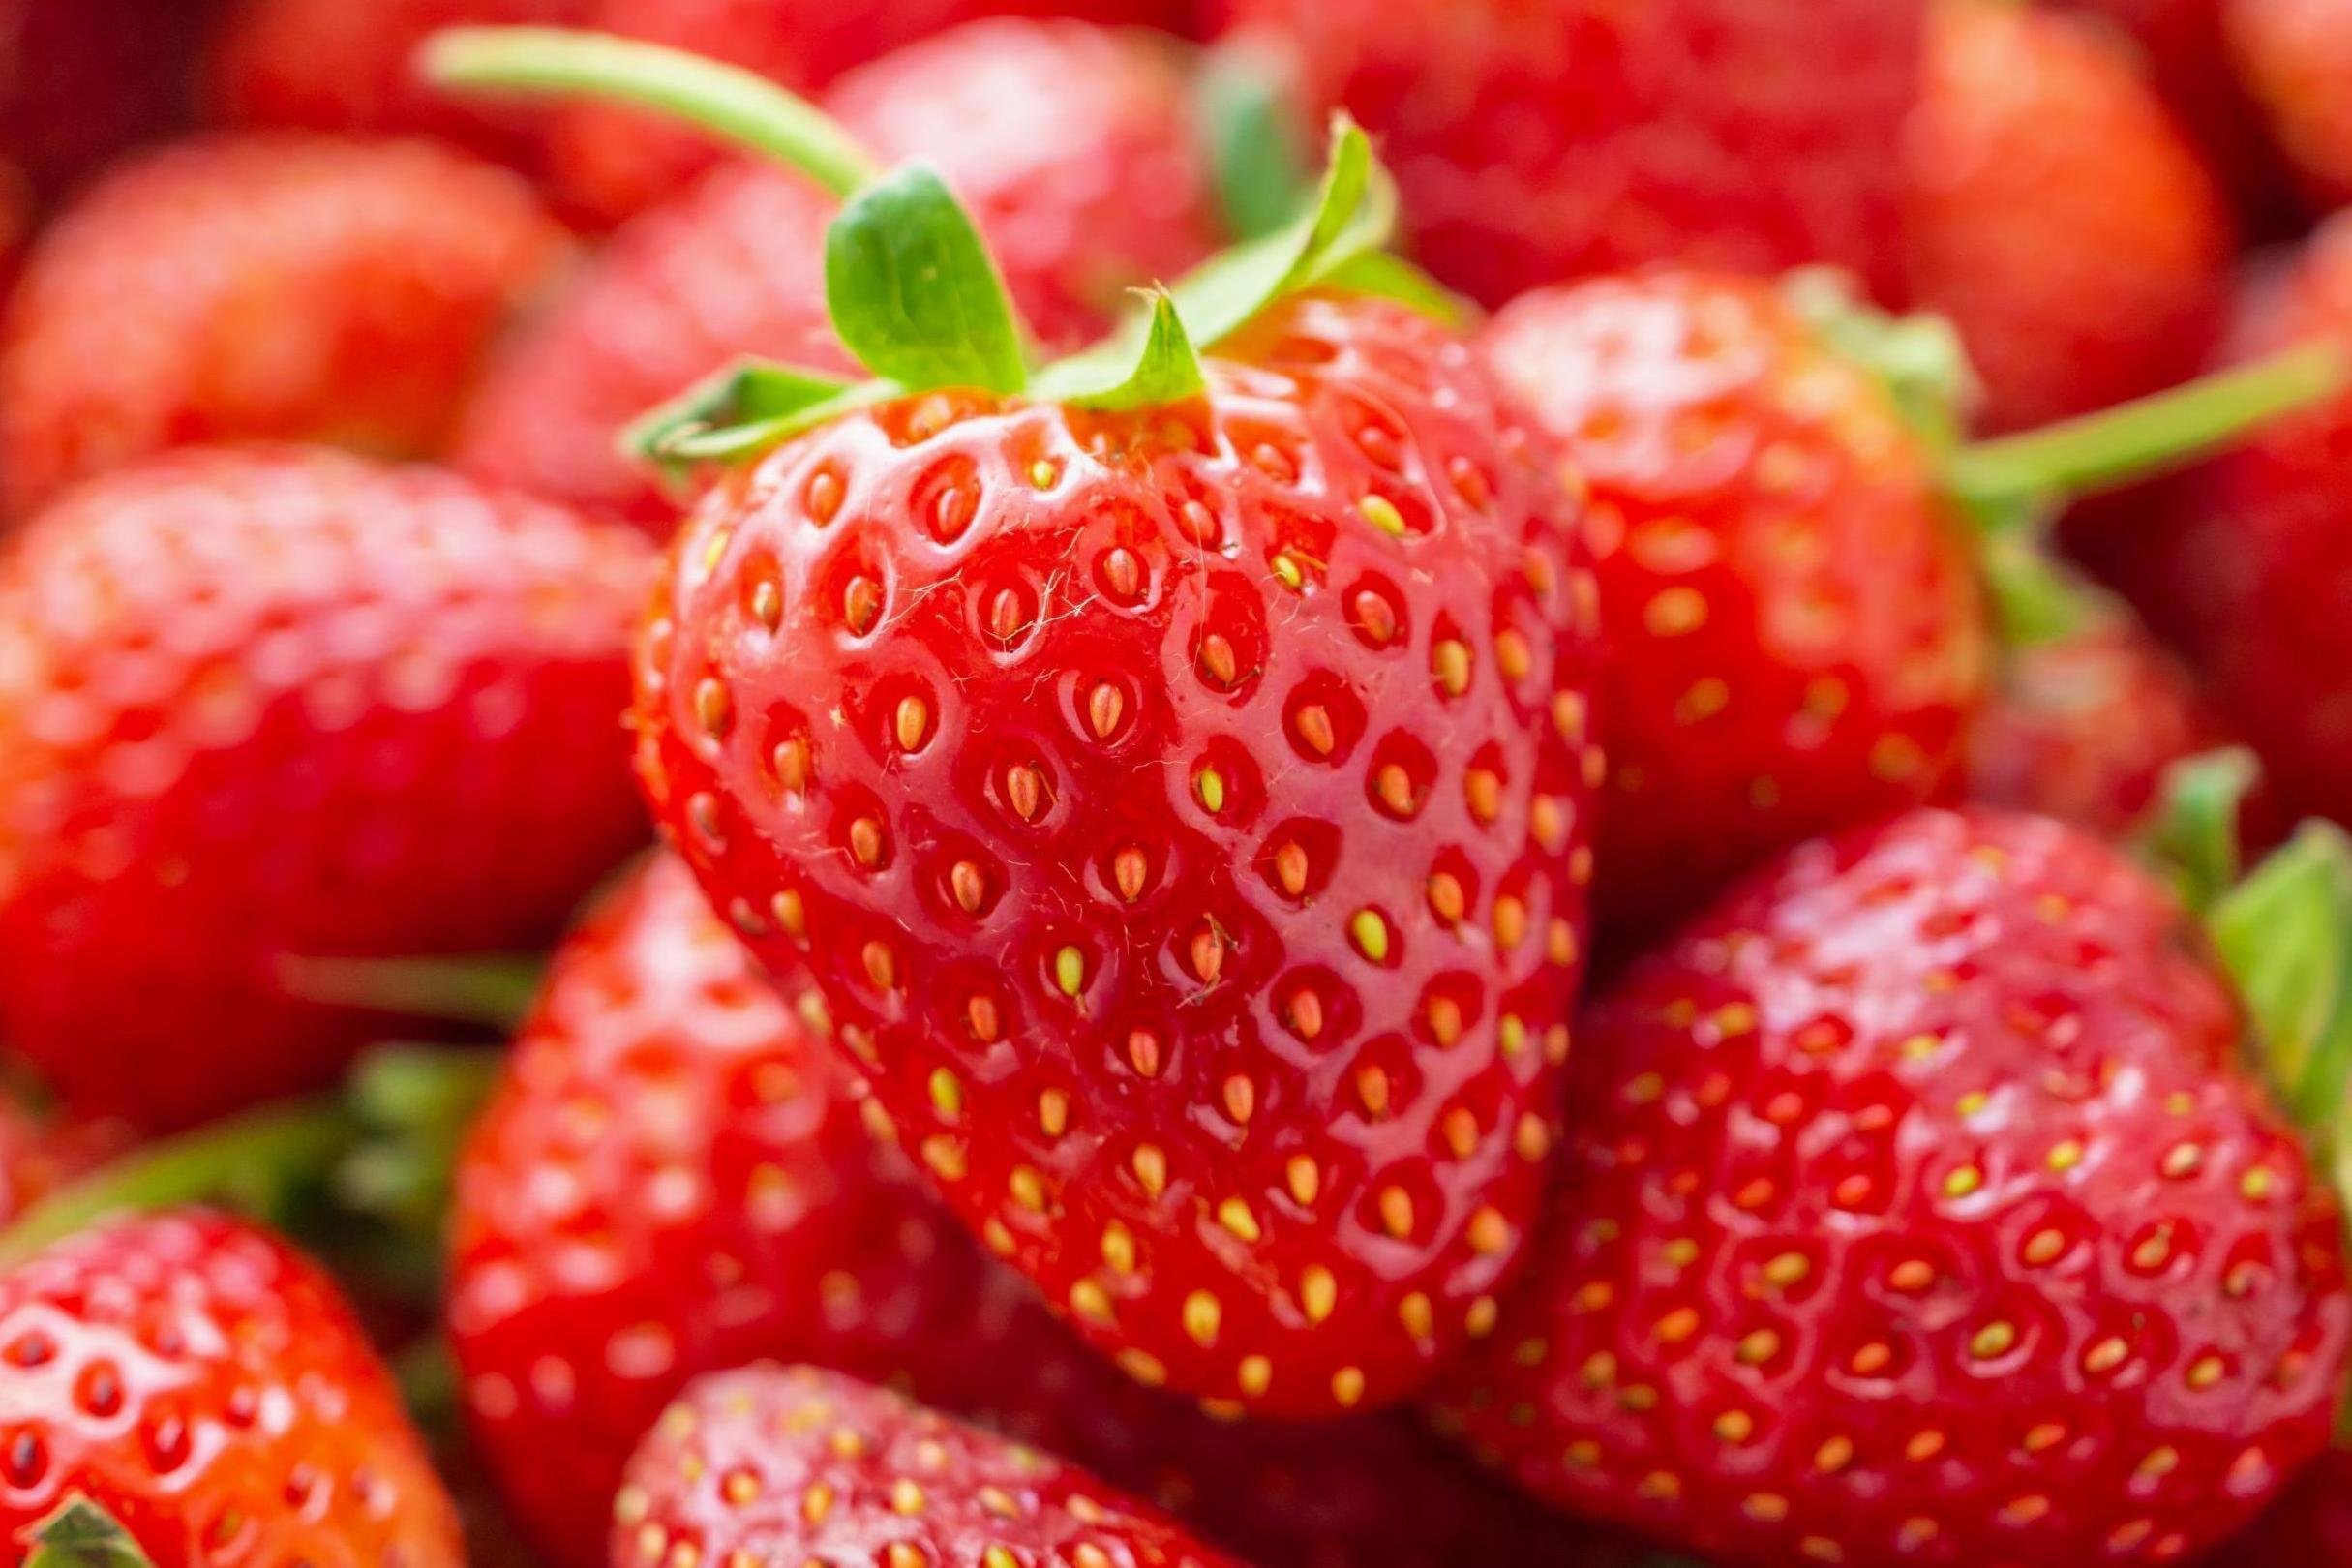 TikTok videos show how to remove worms from strawberries with salt | The  Independent | The Independent